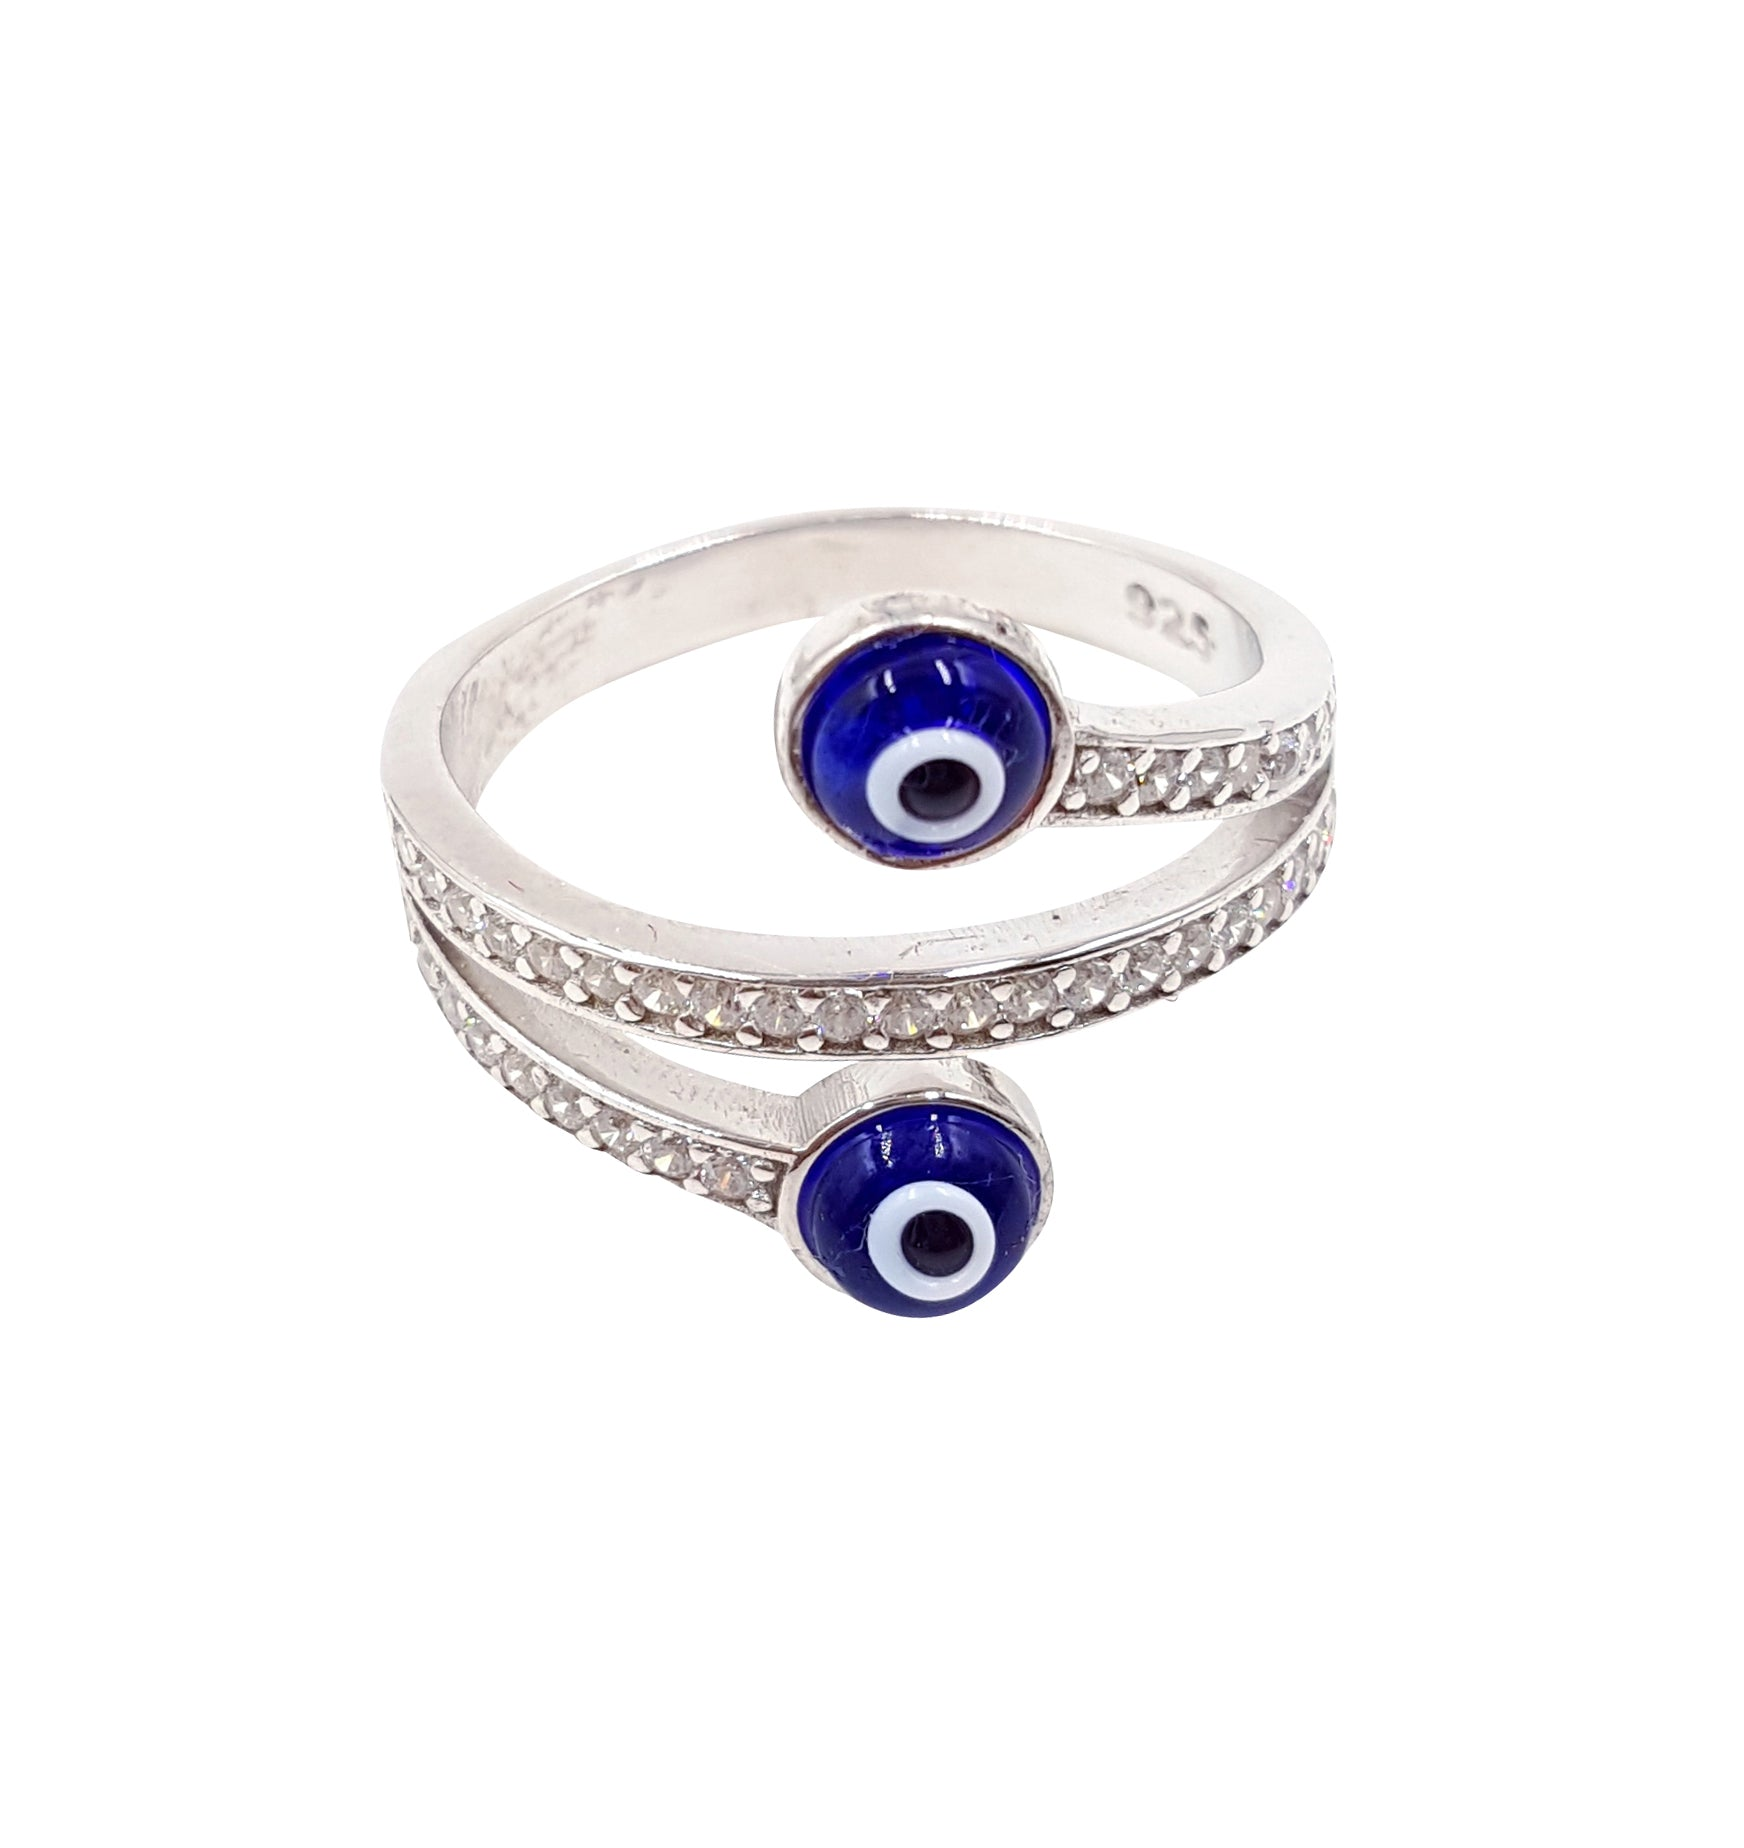 925 Sterling Silver Wrap Around Lucky Eye Ring  #8620